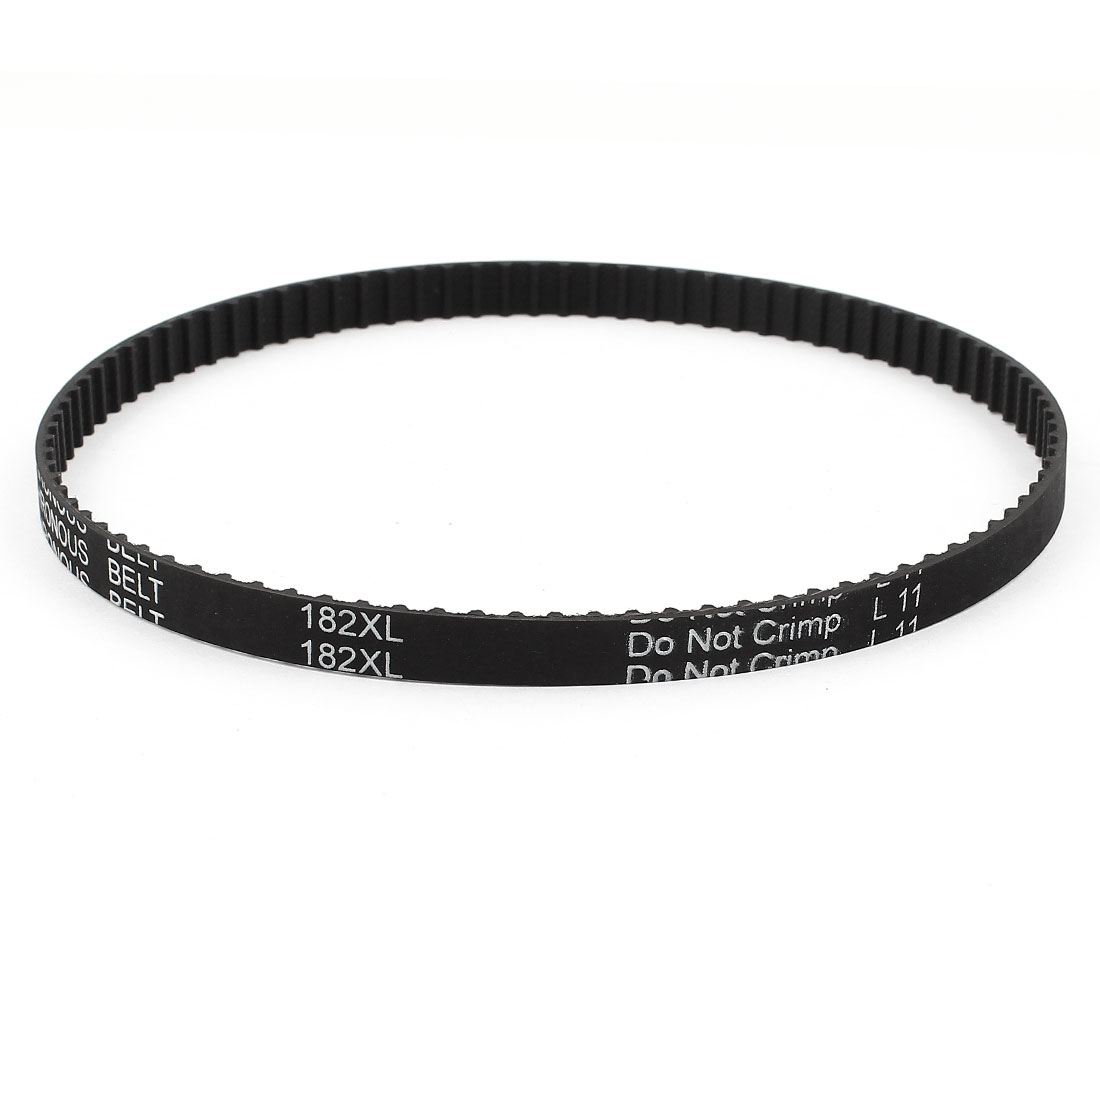 Table Saw 182XL 037 91T 5.08mm Pitch 9.5mm Width Rubber Timing Belt